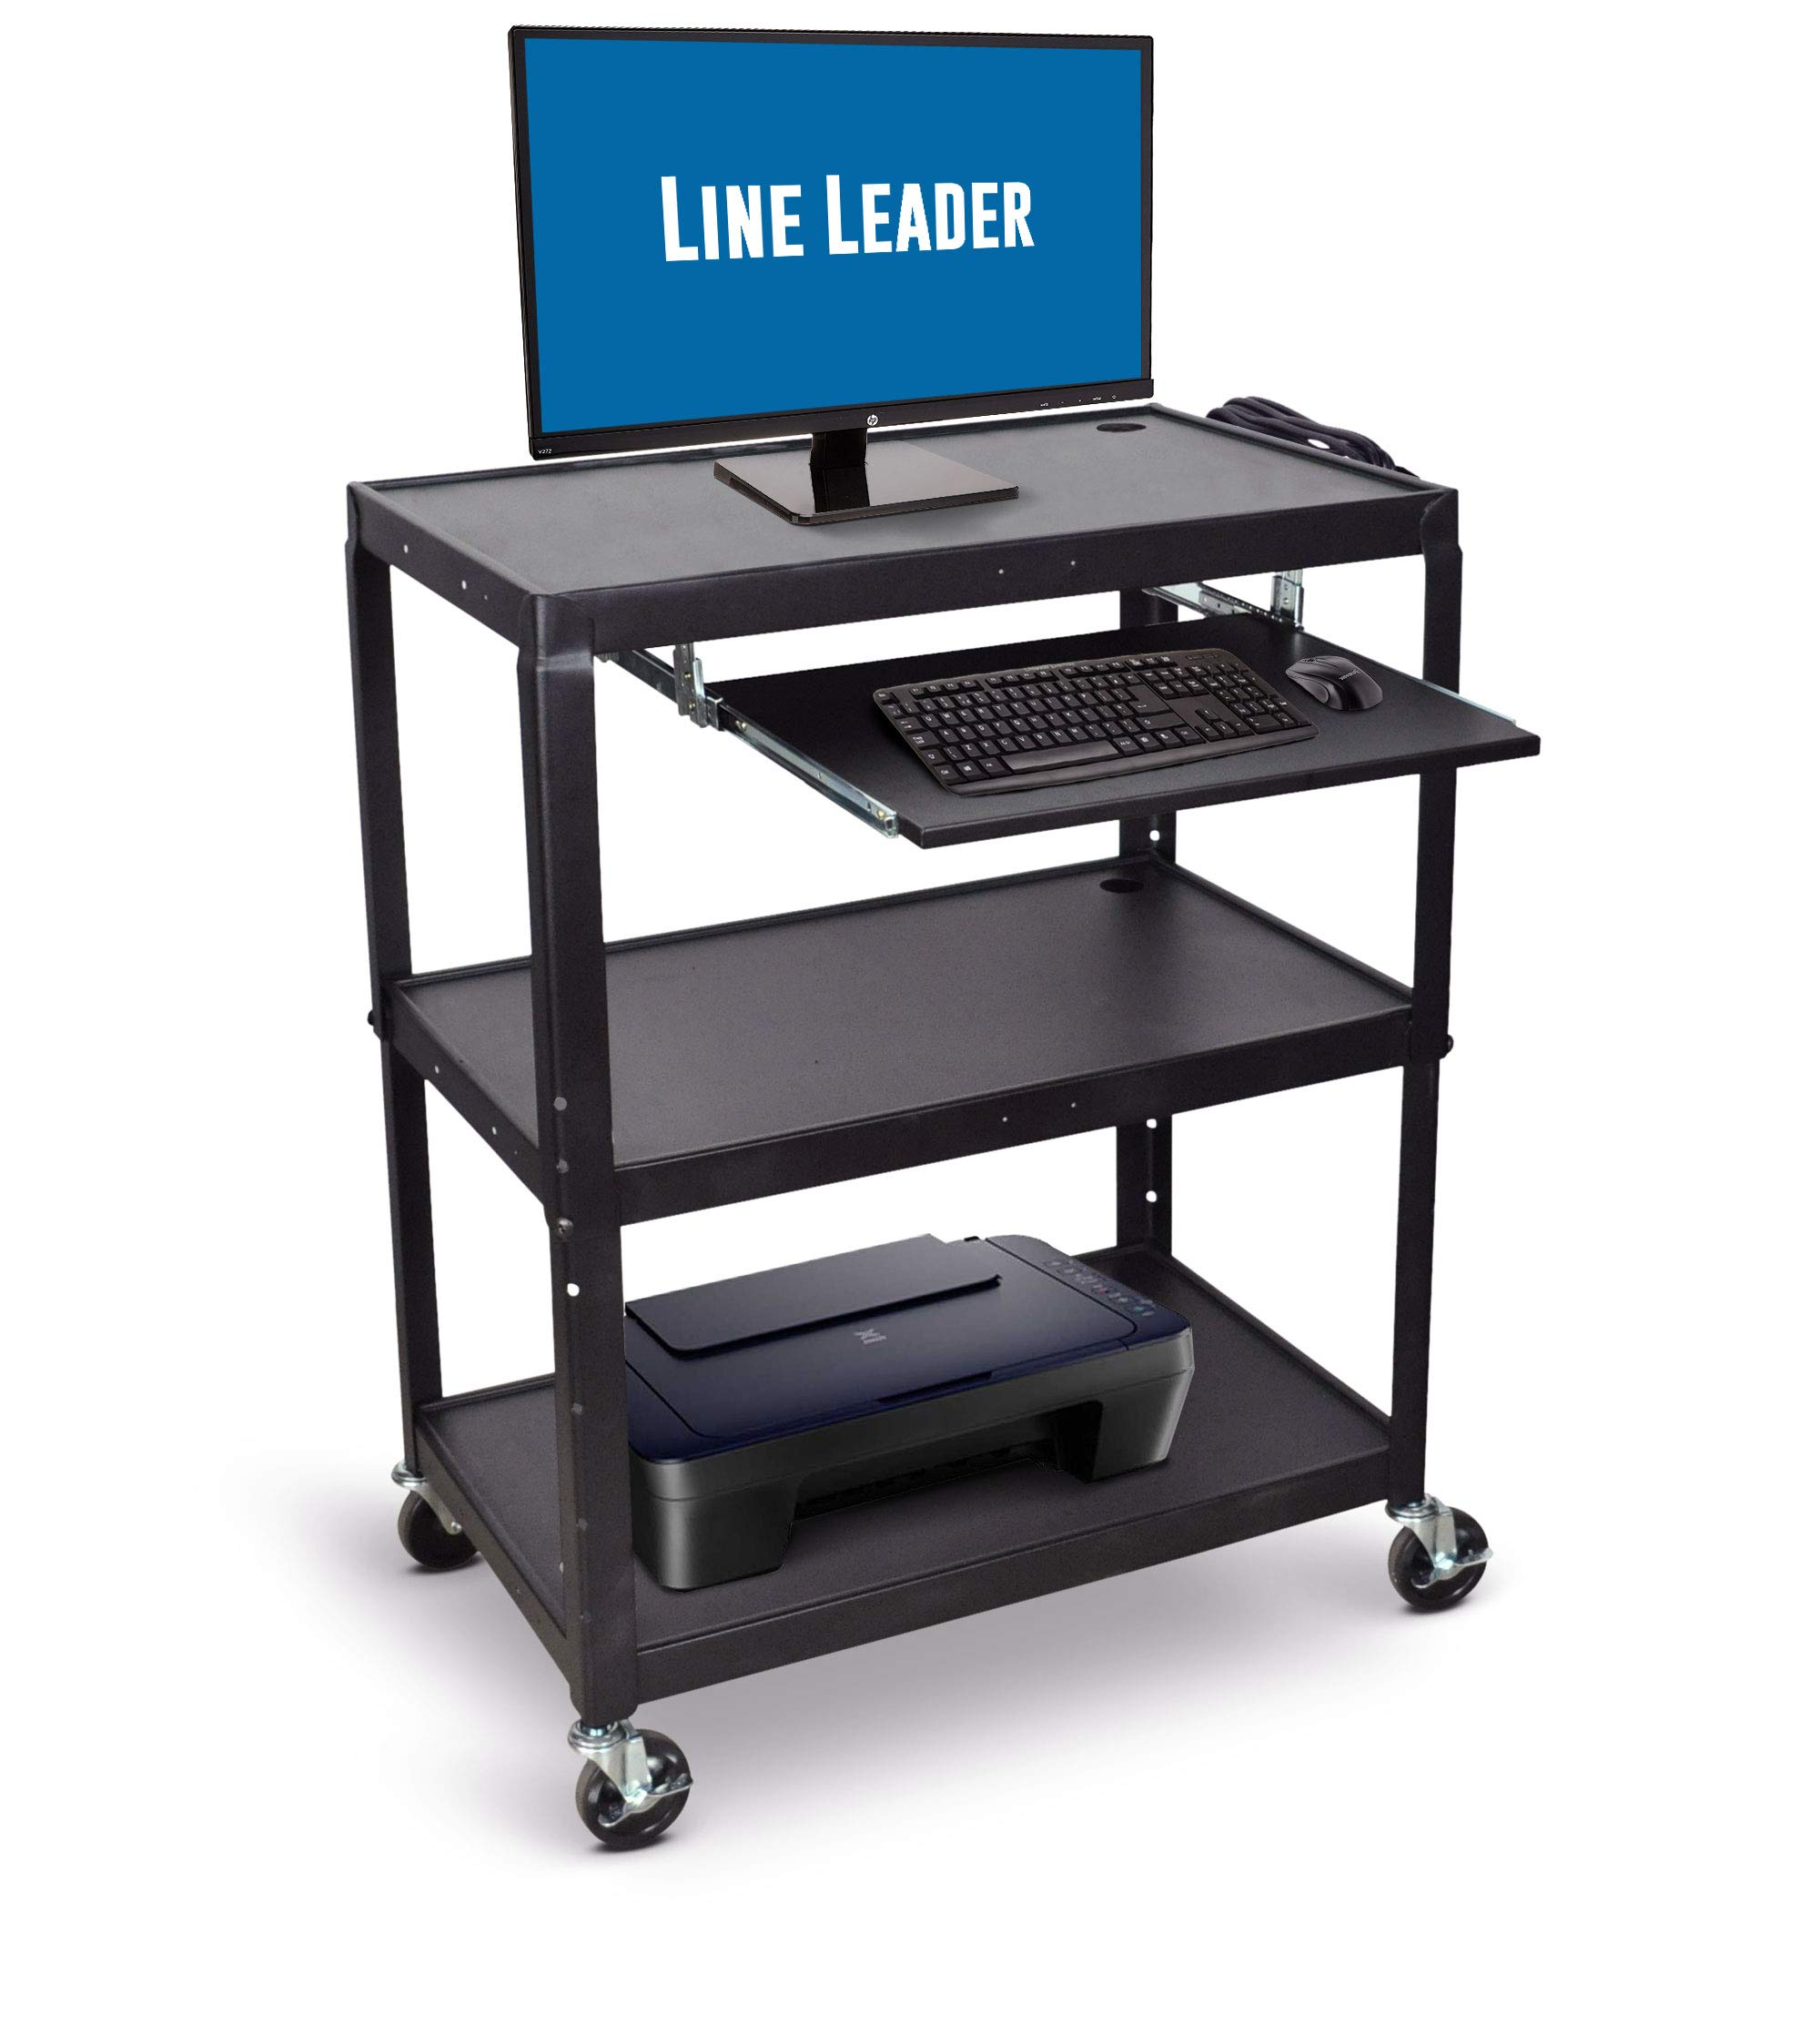 Line Leader Extra Wide AV Cart with Lockable Wheels -Adjustable Shelf Height- Includes Pullout Keyboard Tray and Cord Management! (42x32x20) (Extra Wide AV Cart - Black) by Stand Steady (Image #1)